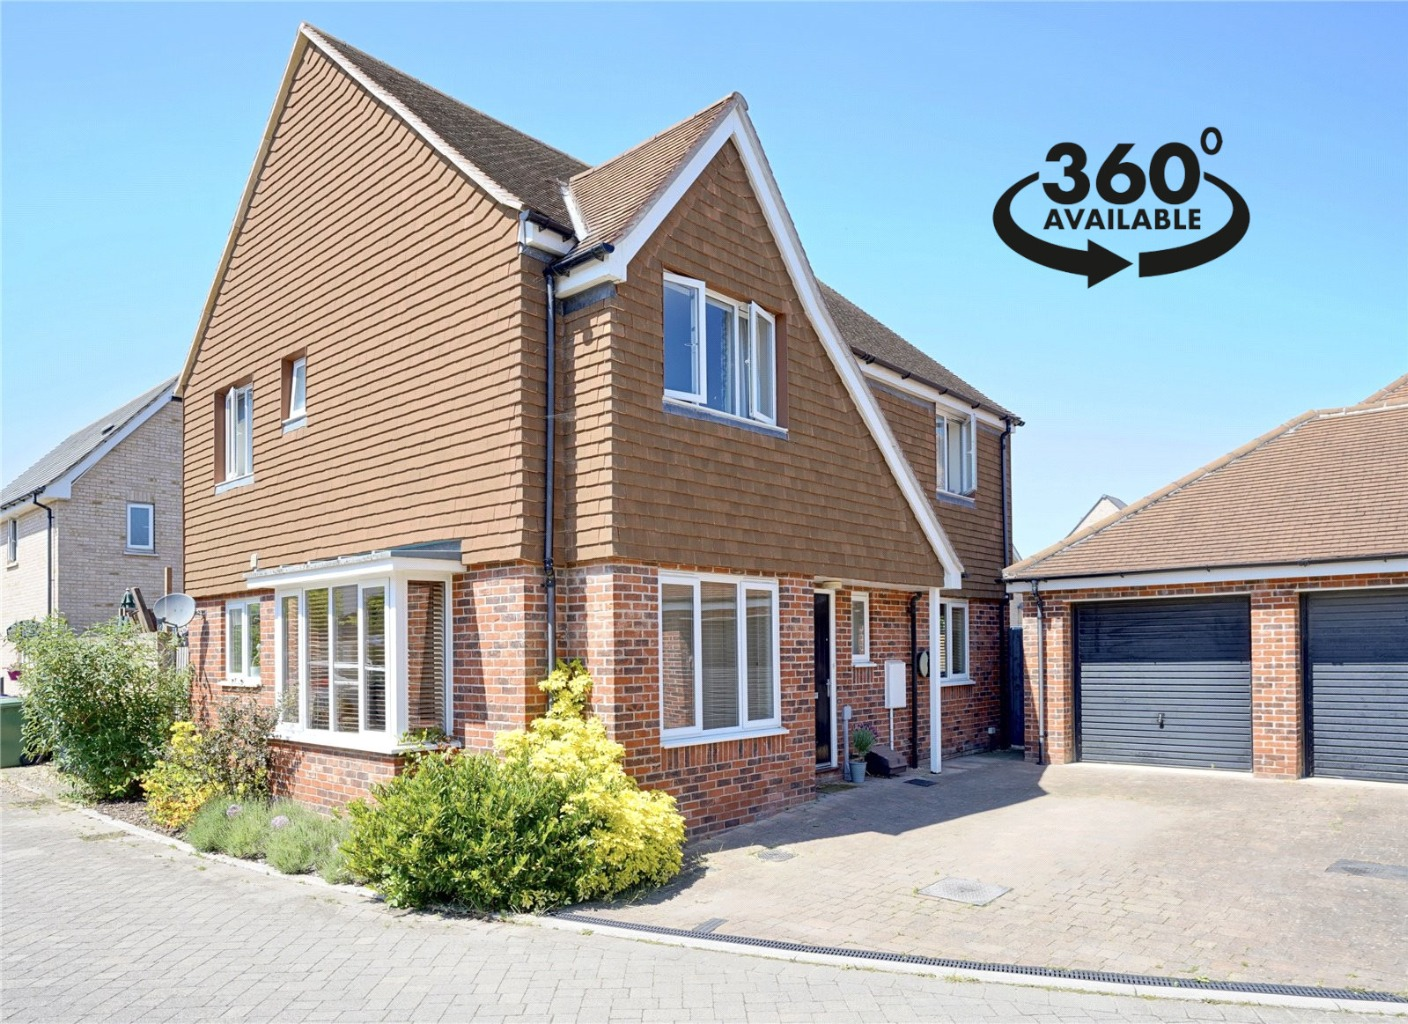 4 bed  for sale in Wood Ridge Crescent, St. Neots, PE19